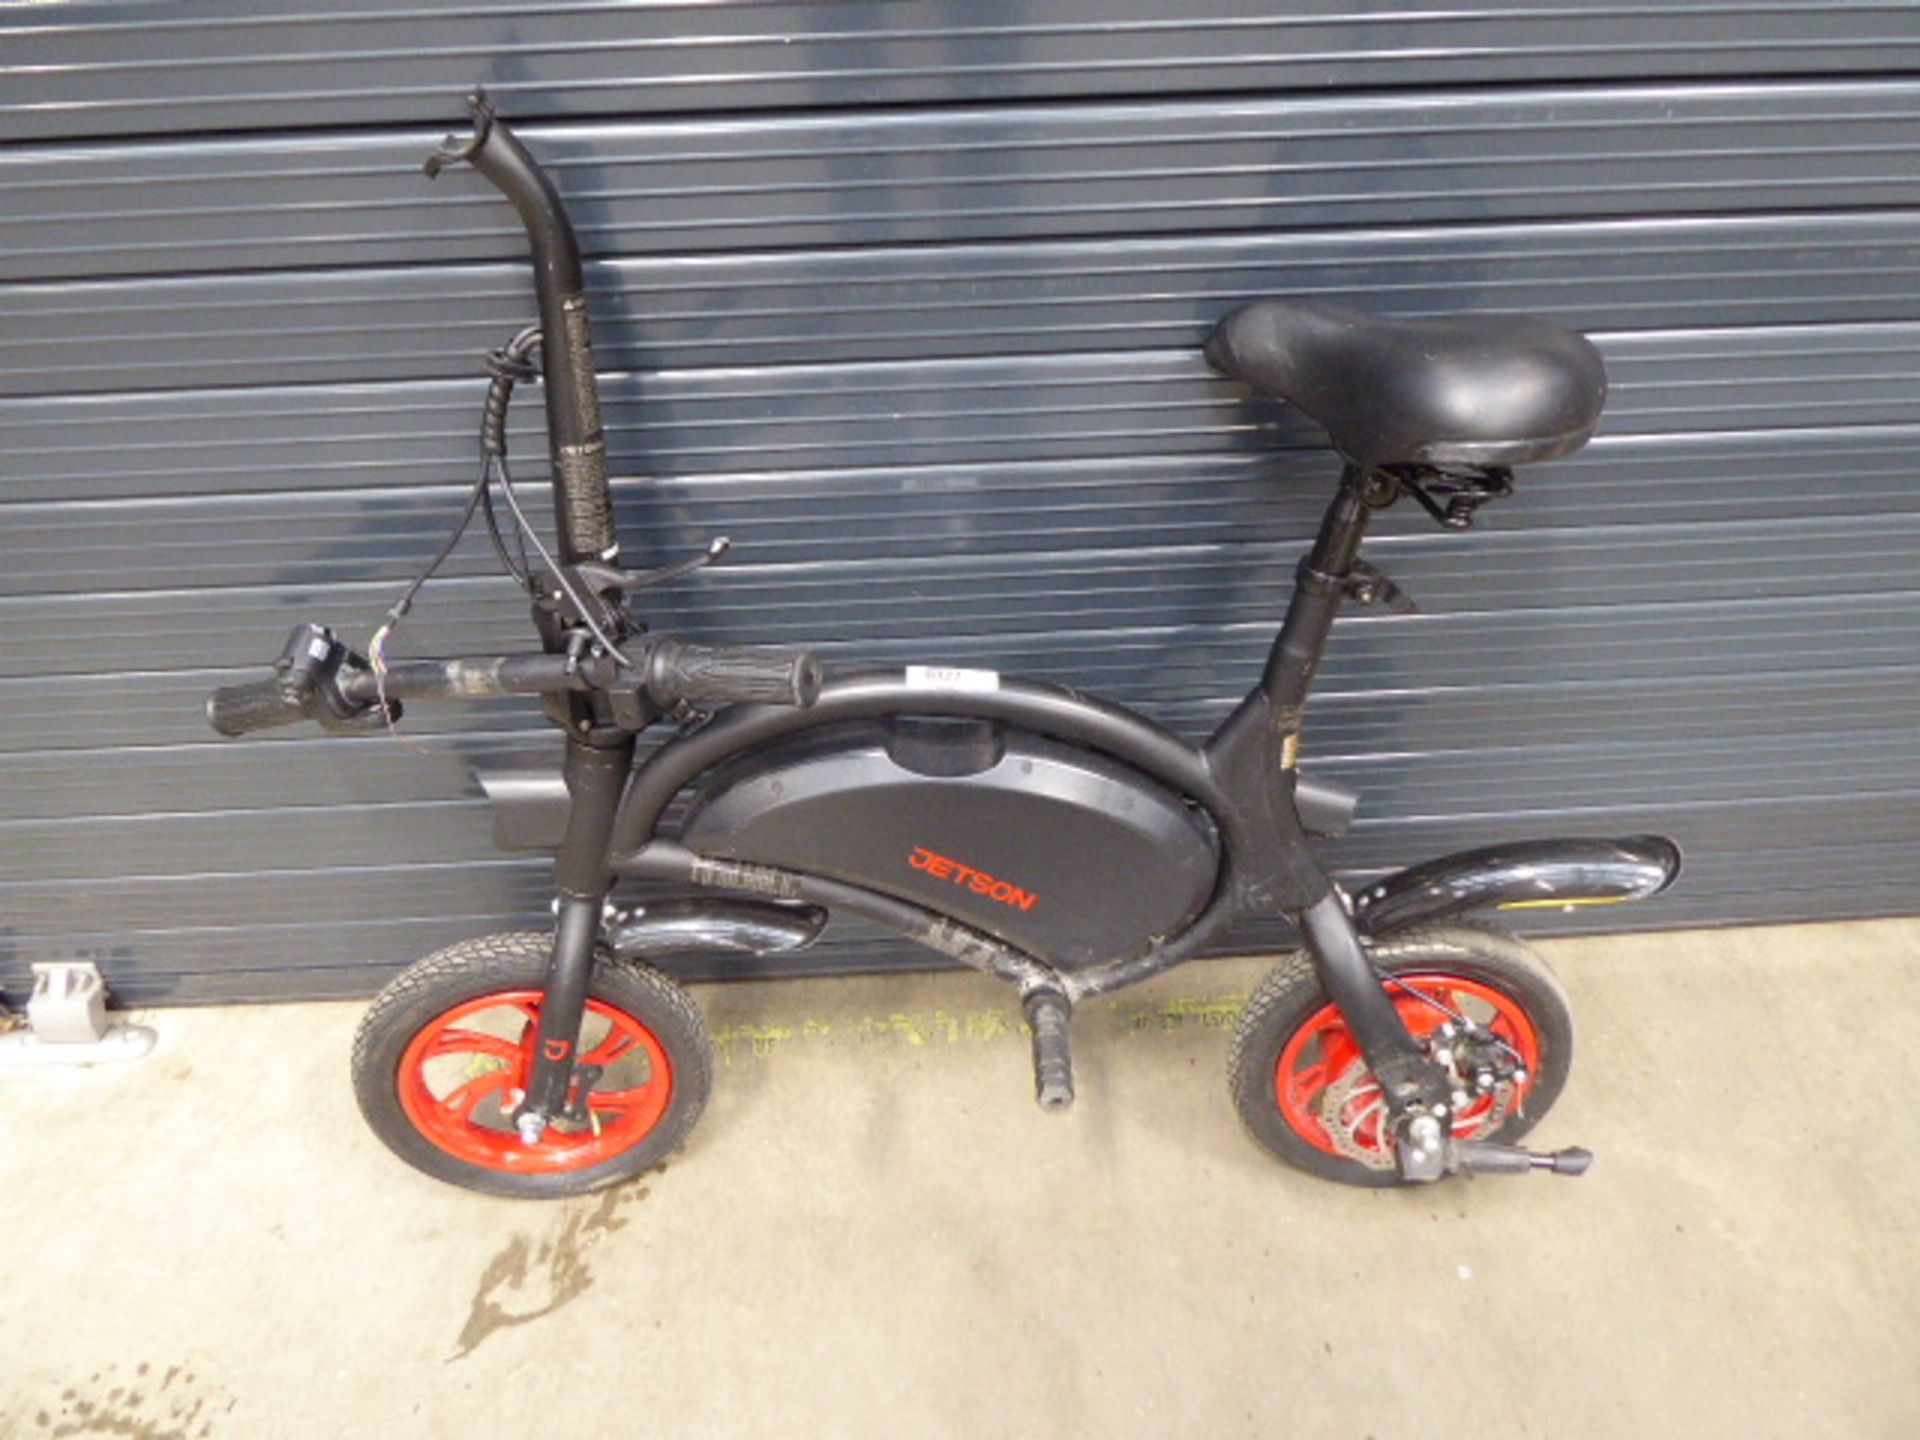 Jetson 2 wheel electric scooter bike (damaged handlebars, no charger)